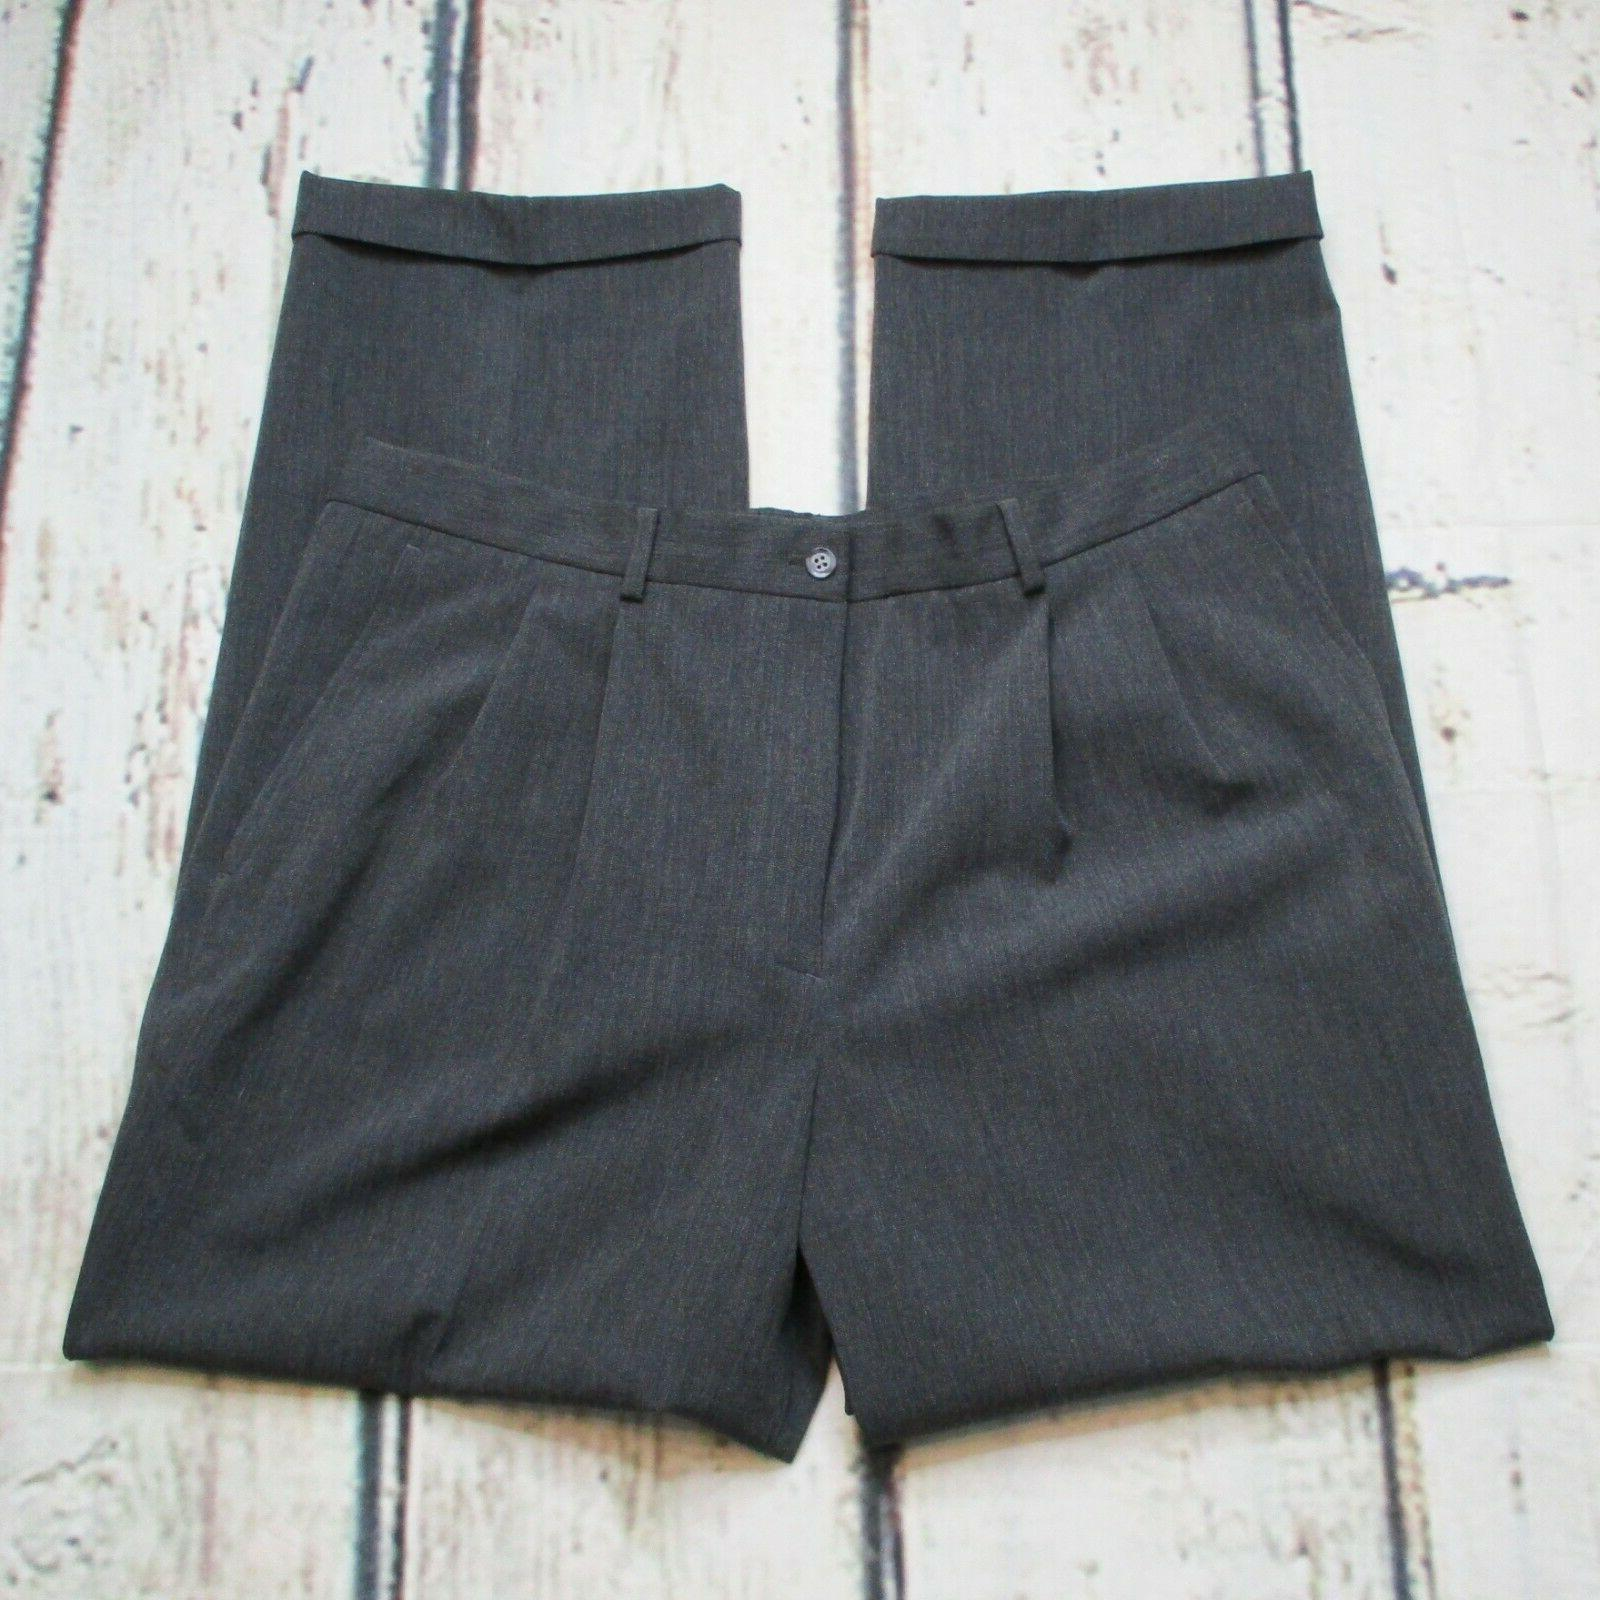 Claiborne Mens Size 38x30 Pleated and Pants